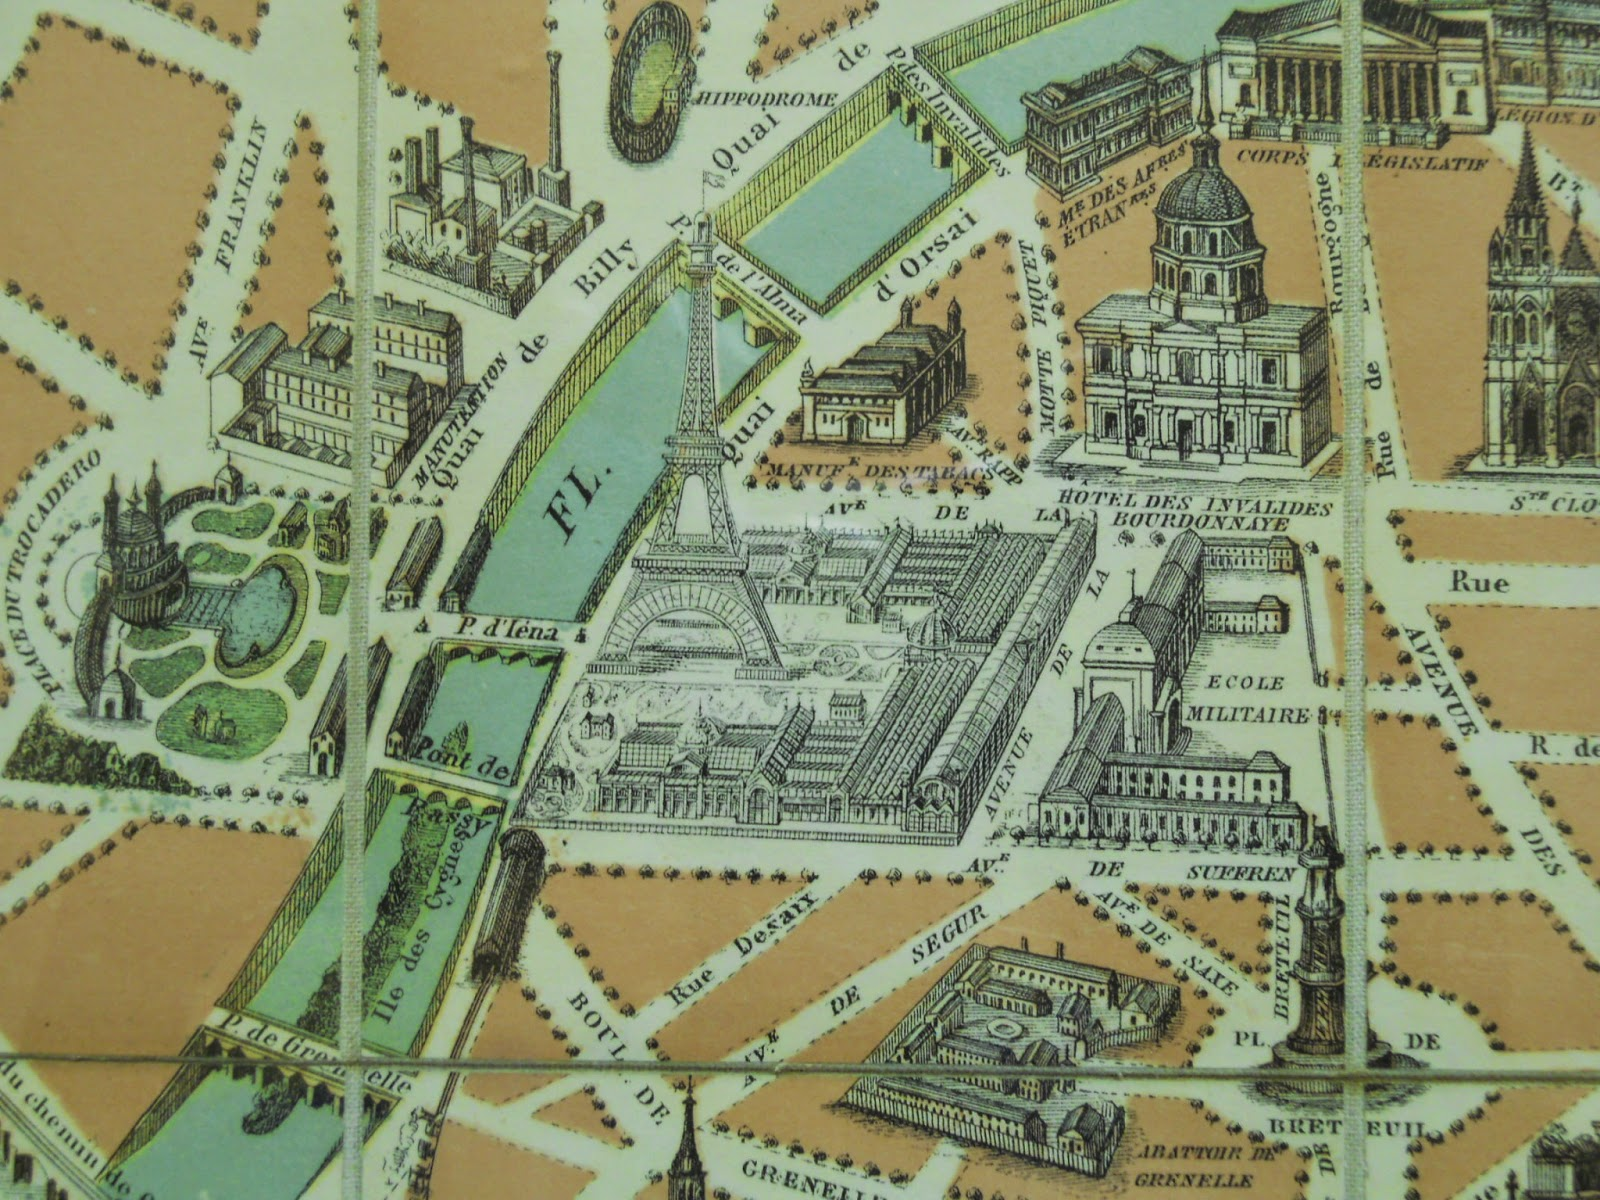 everything about this maps depiction of paris from its boundaries to its railroads places it between 1856 and 1860 except for one